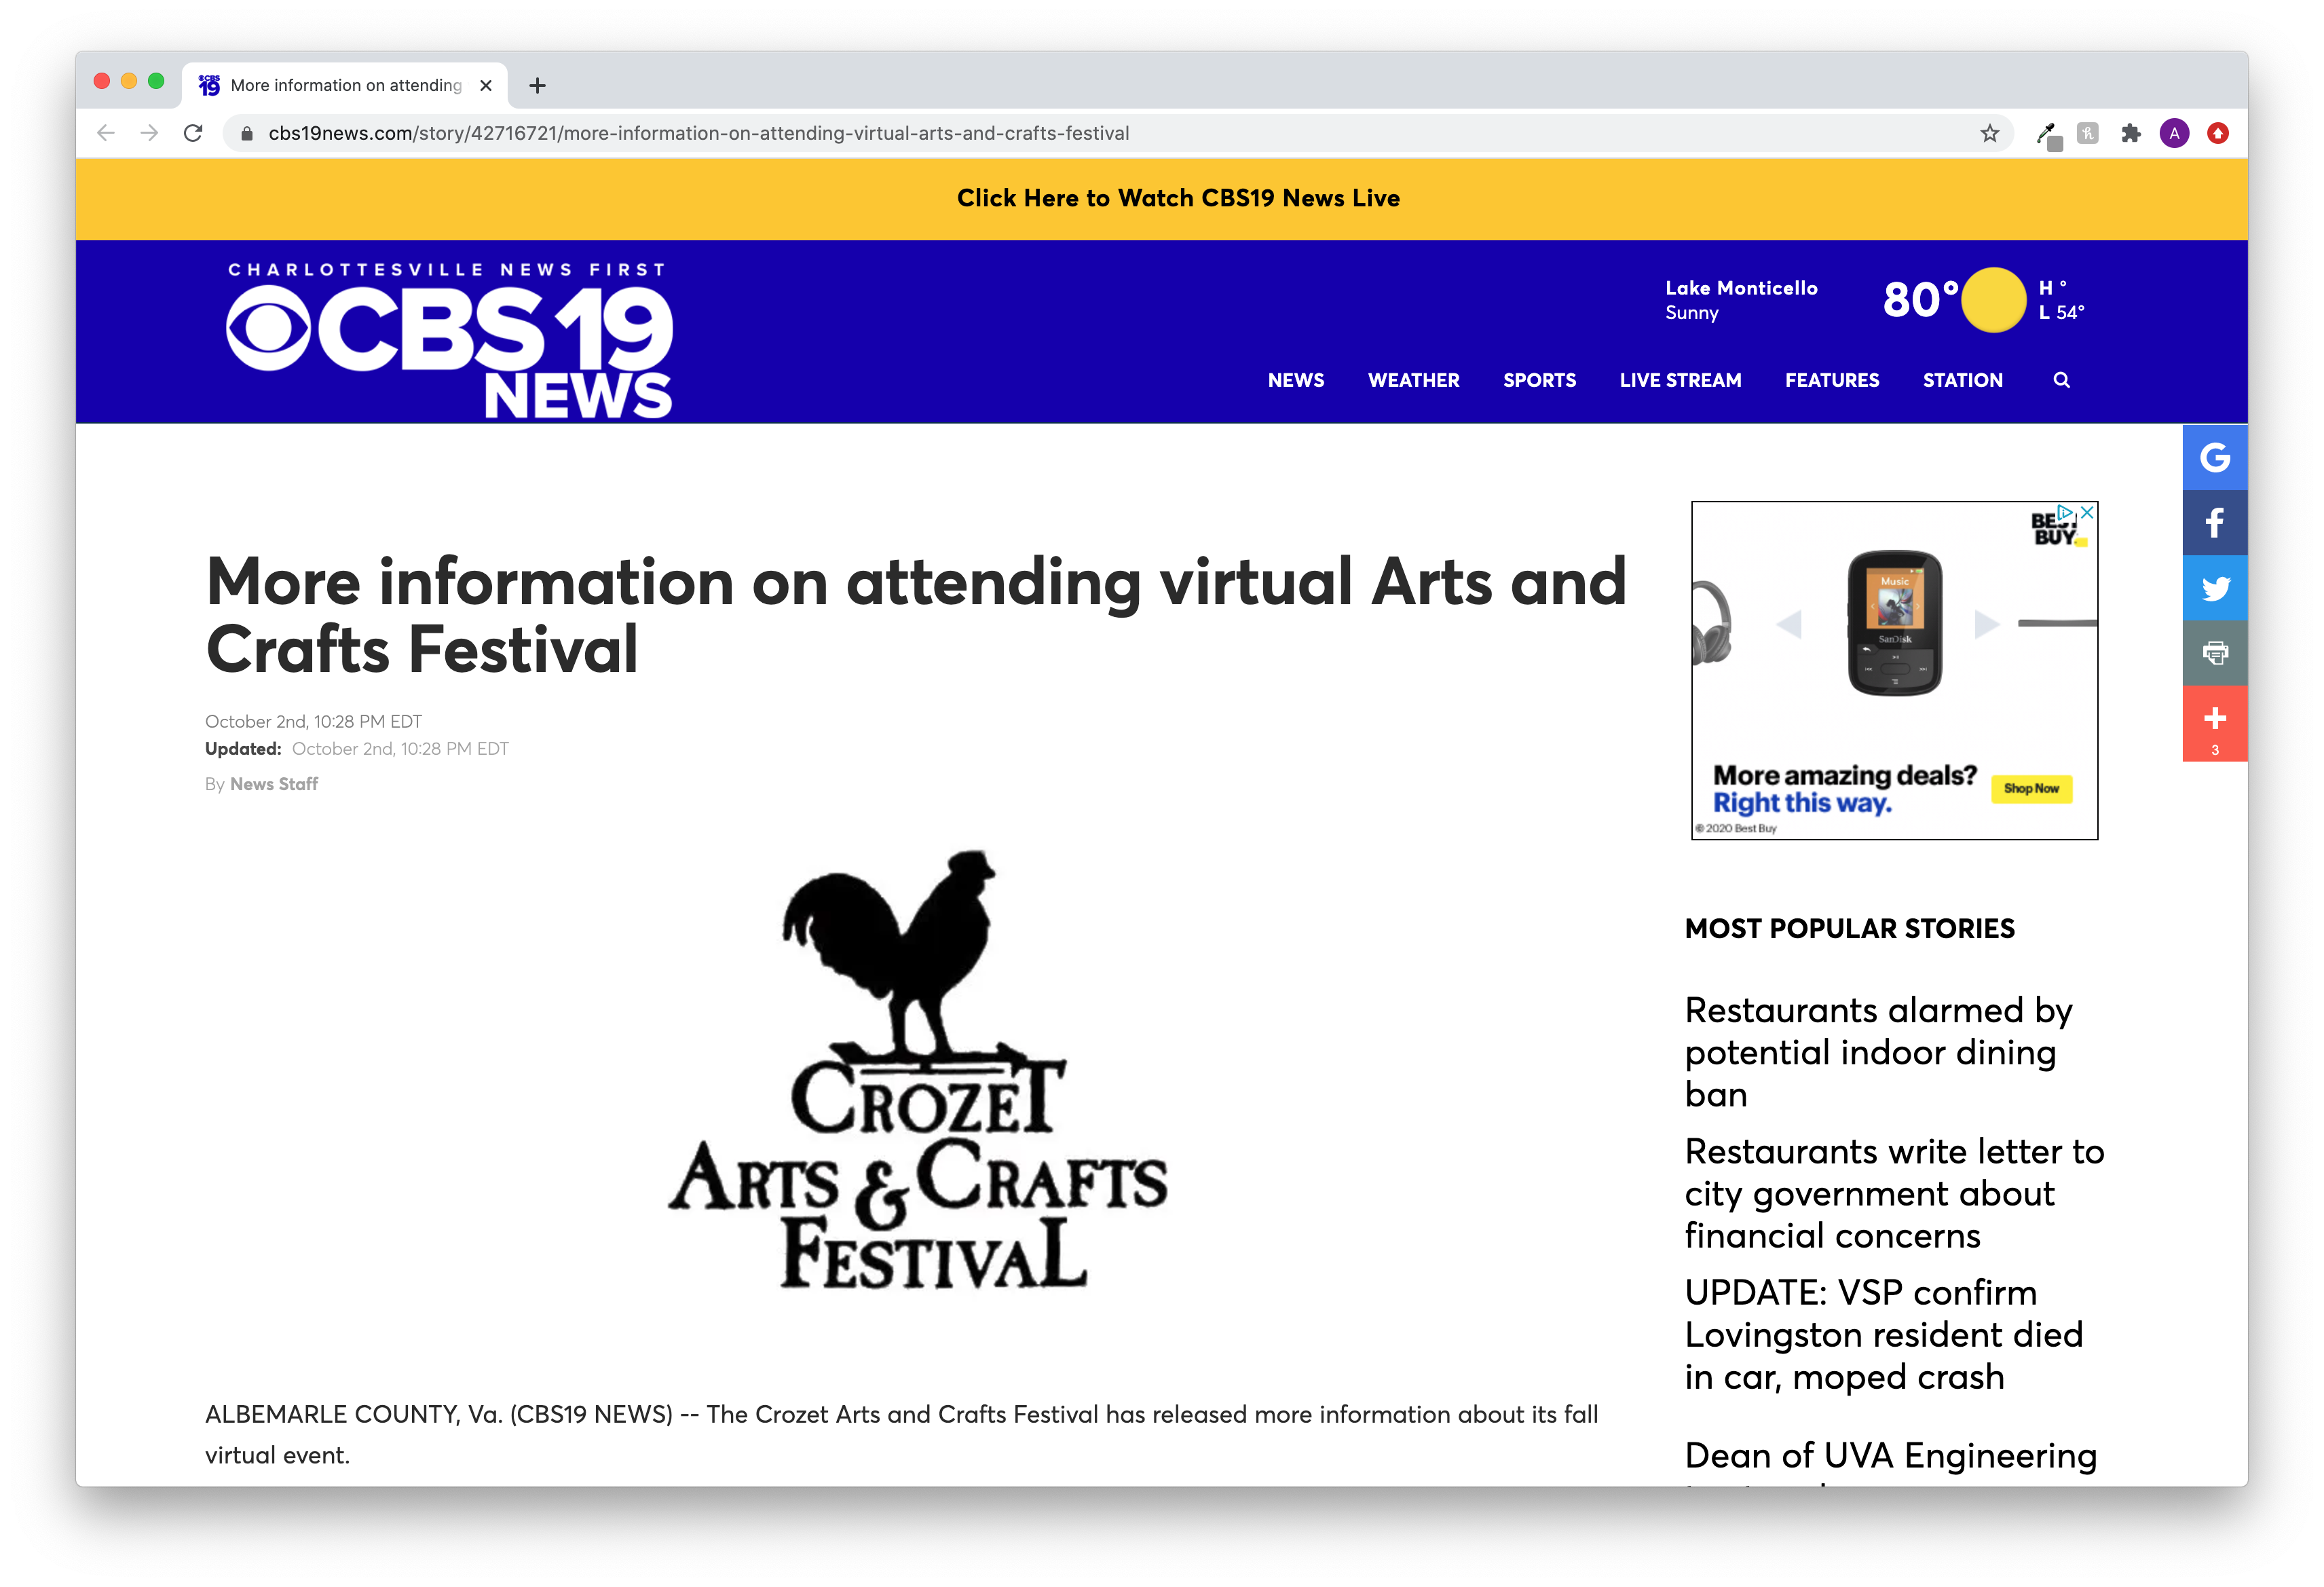 BoothCentral helped make the Virtual Crozet Arts & Crafts Fair Possible